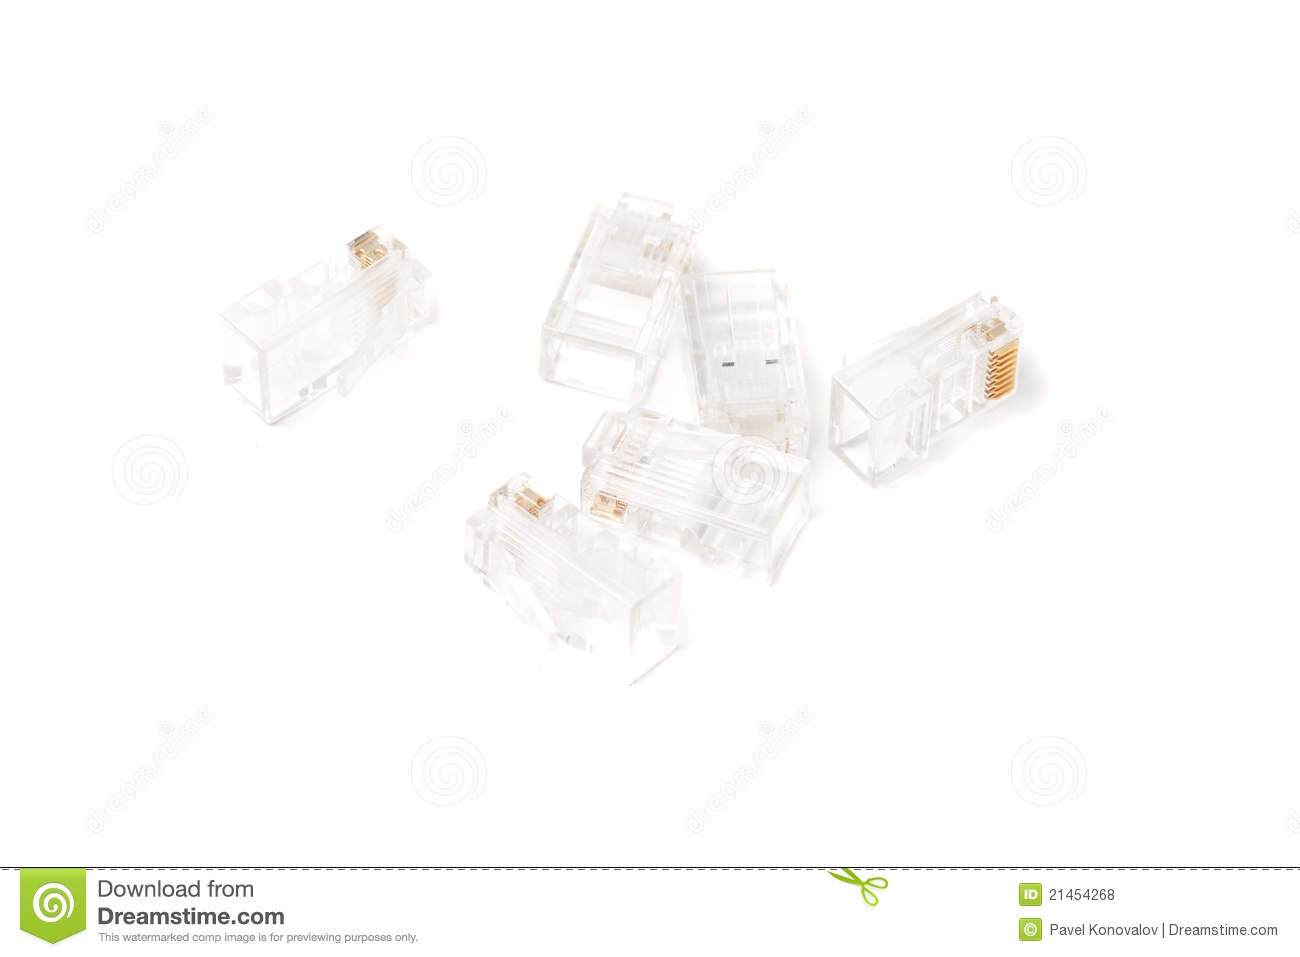 Network cable connector stock photo. Image of crimping